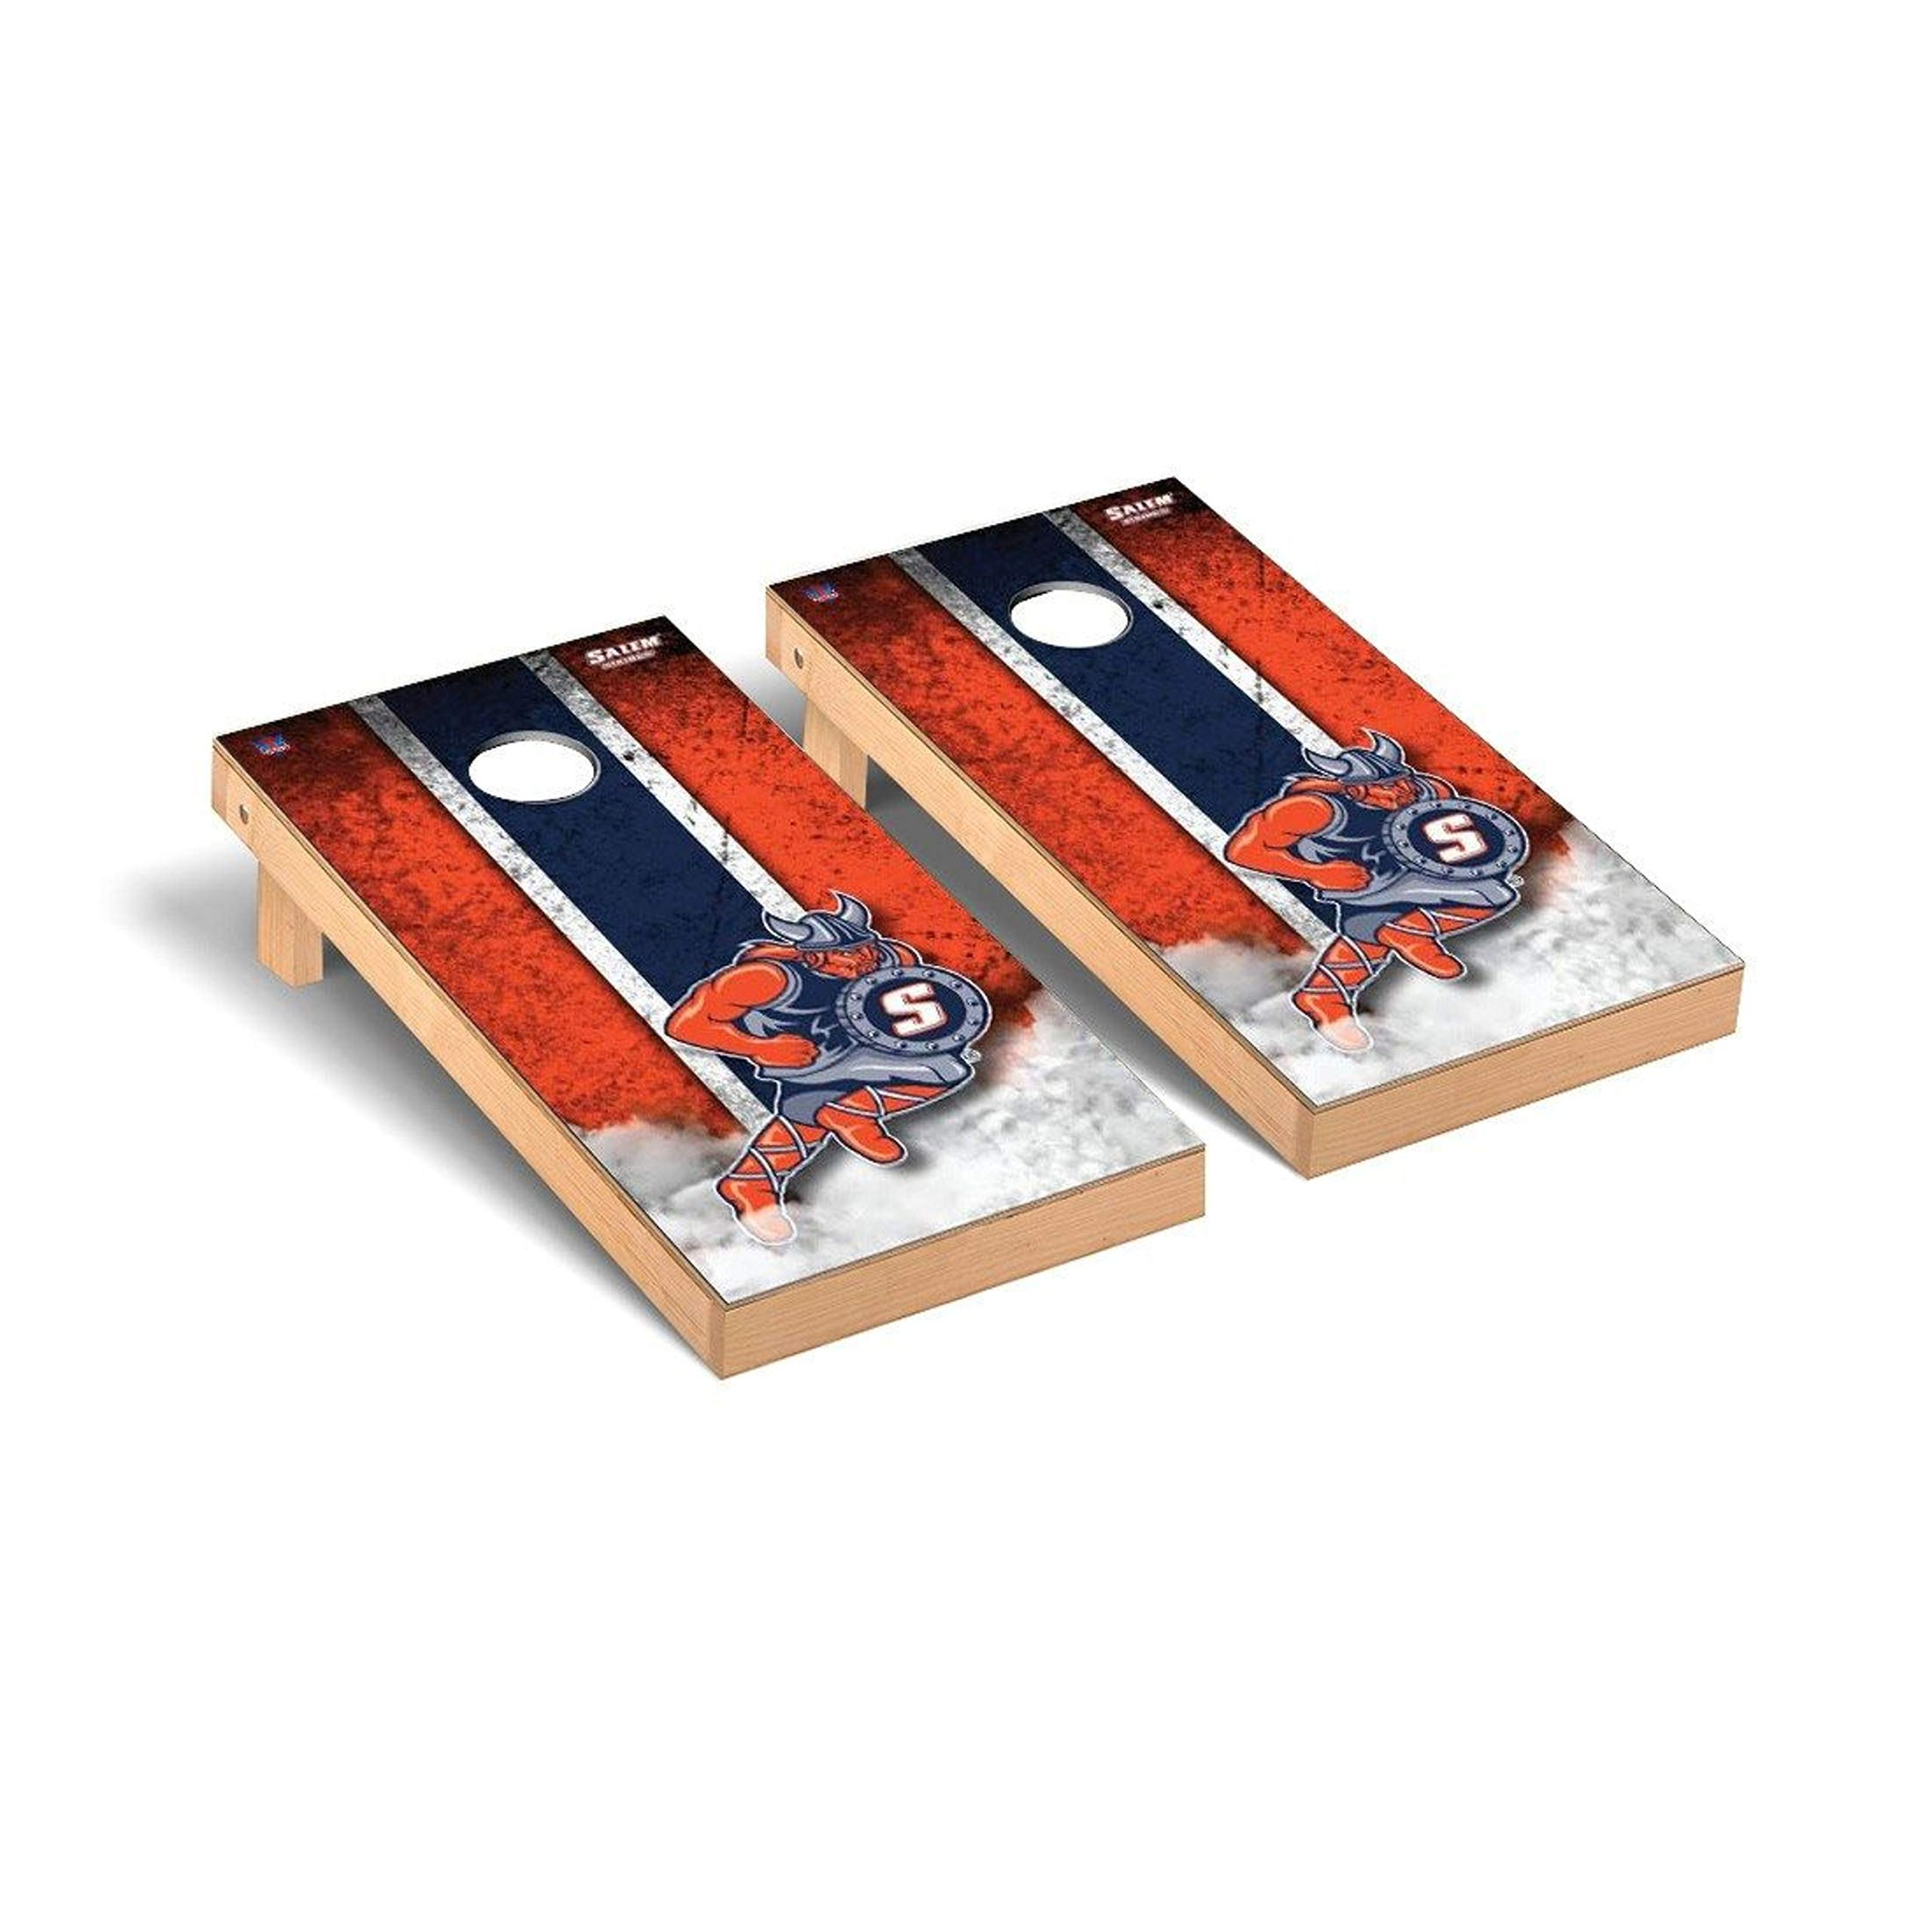 Victory Tailgate Regulation Collegiate NCAA Vintage Series Cornhole Board Set - 2 Boards, 8 Bags - Salem State Vikings by Victory Tailgate